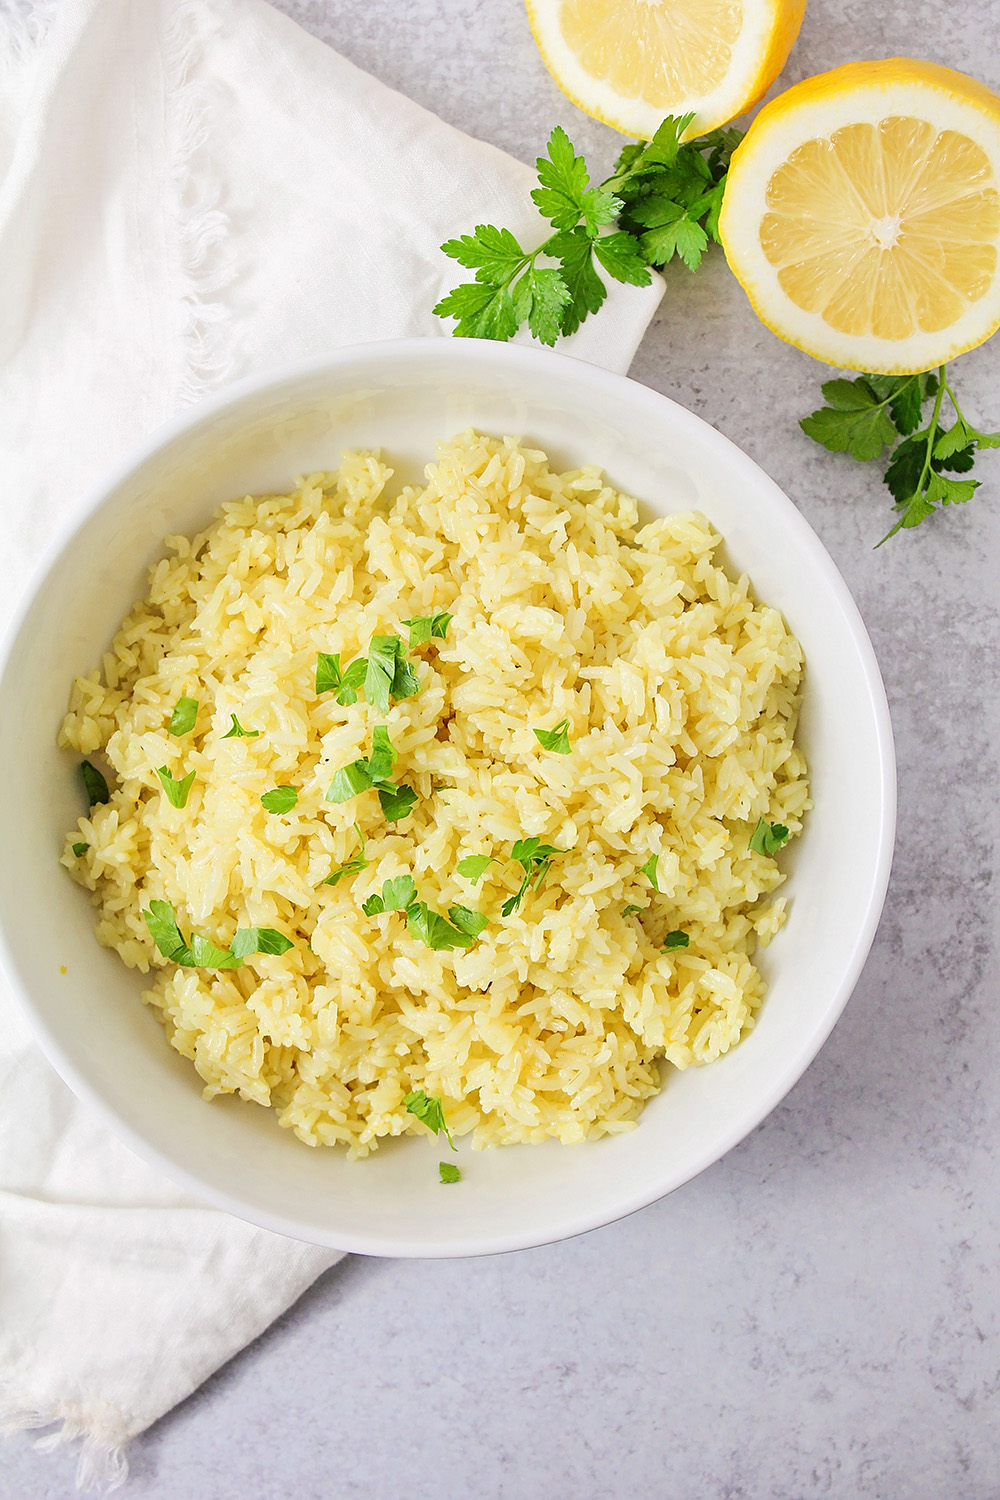 This zesty and flavorful lemon rice is so quick and easy to make in the Instant Pot. It's the perfect side dish!